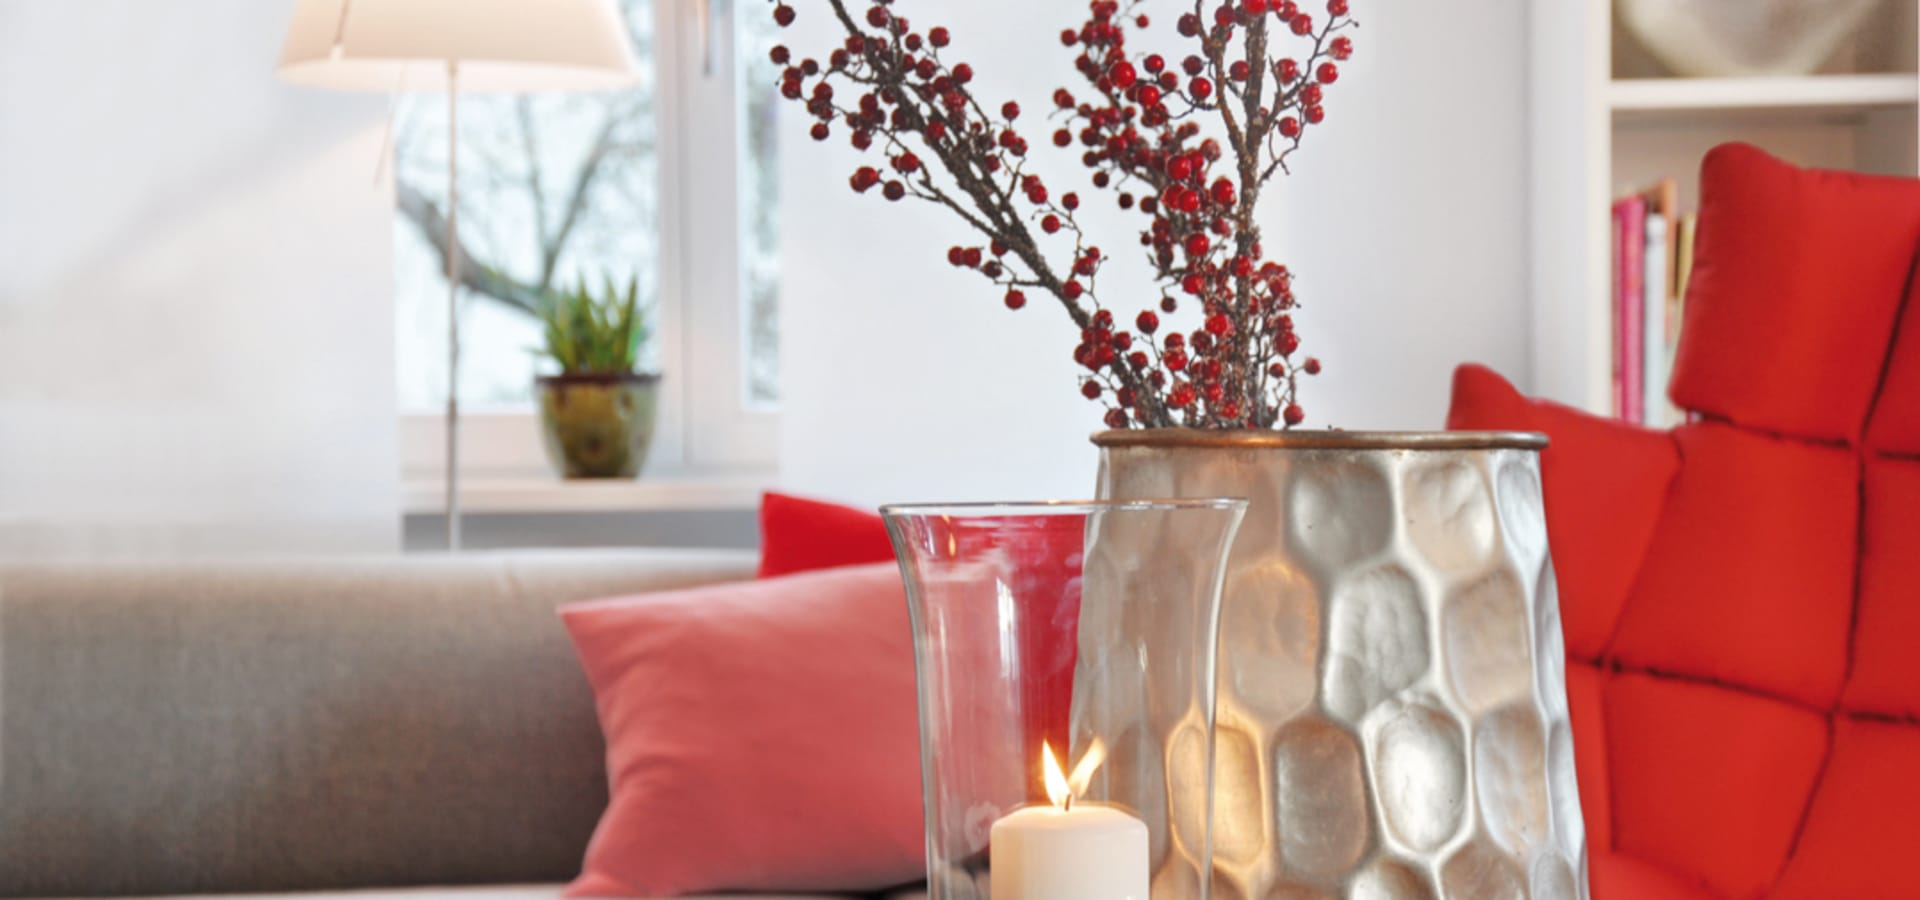 claudia mayer HOMESTAGING